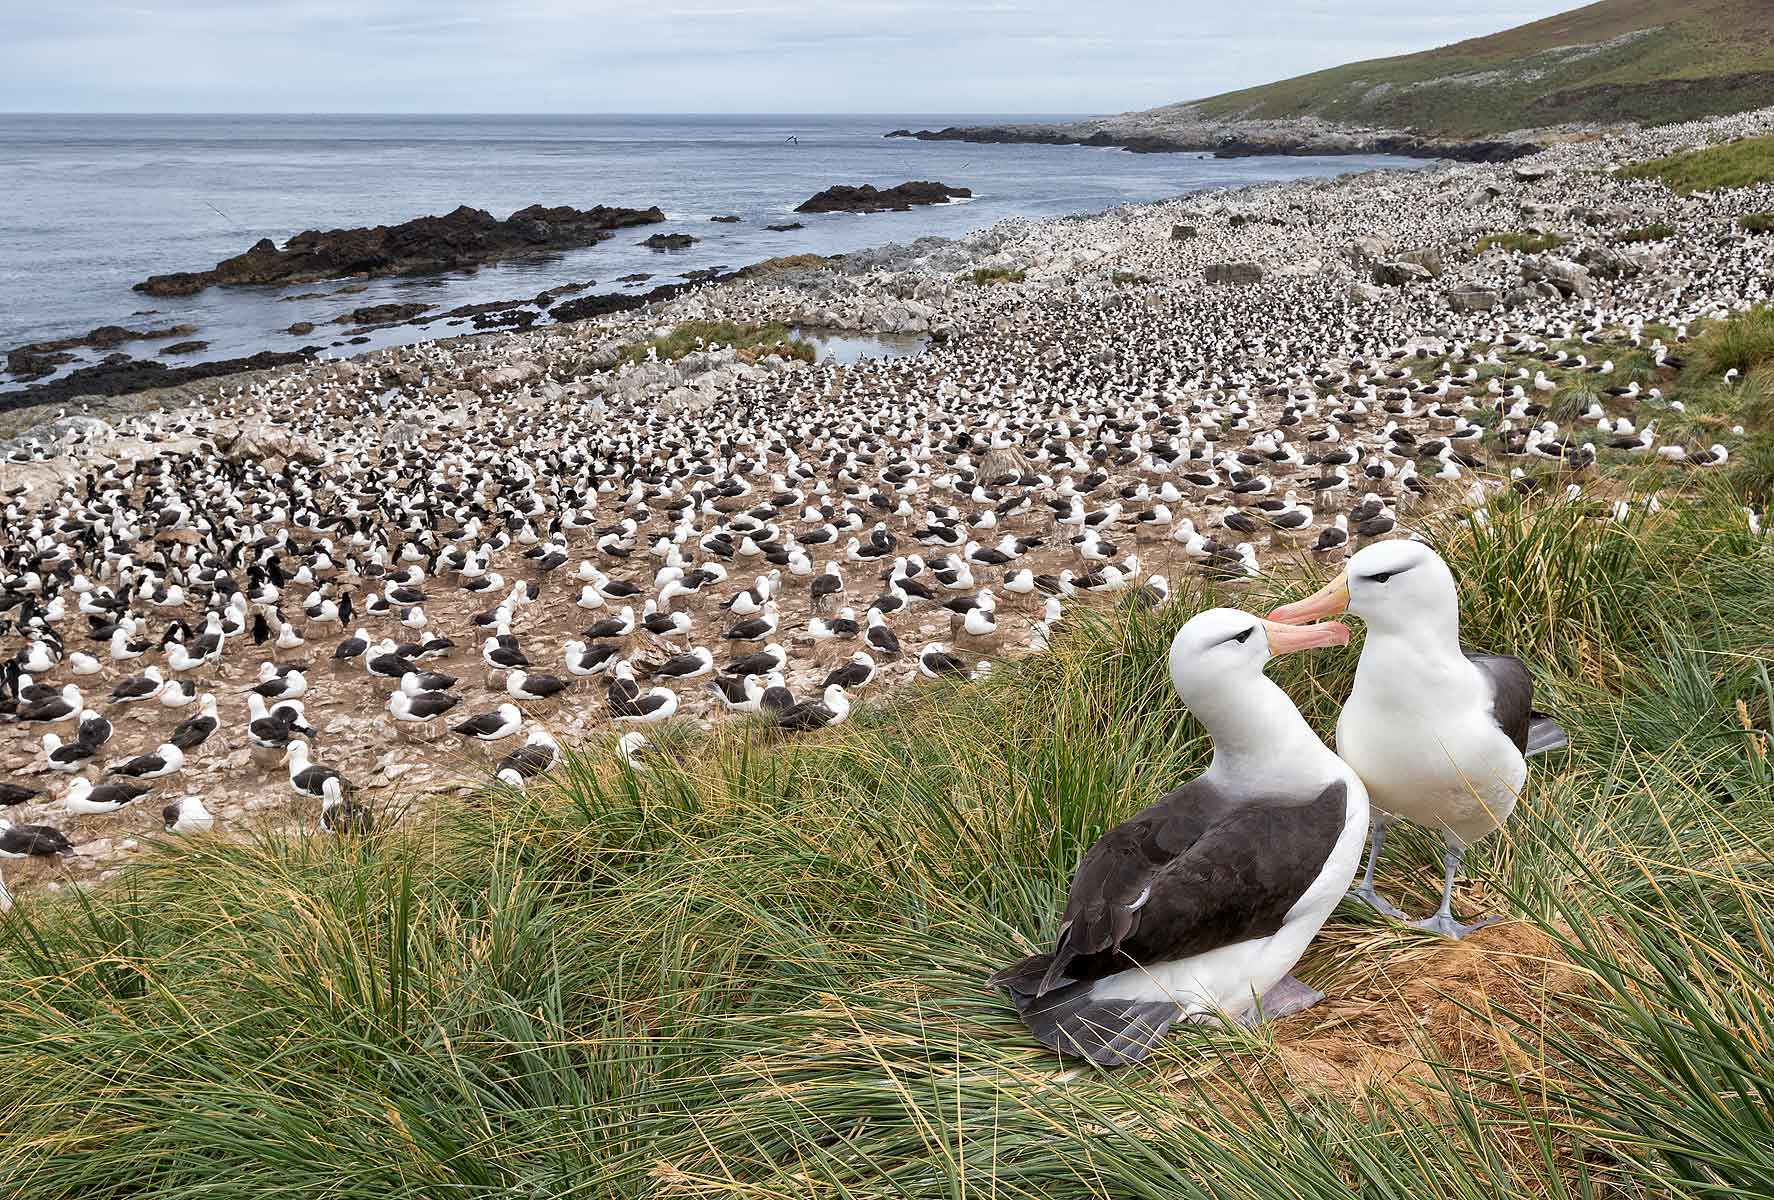 Black-browed-Albatrosses-on-th-edge-of-the-colony_E7T4768-Steeple-Jason,-Falkland-Islands.jpg